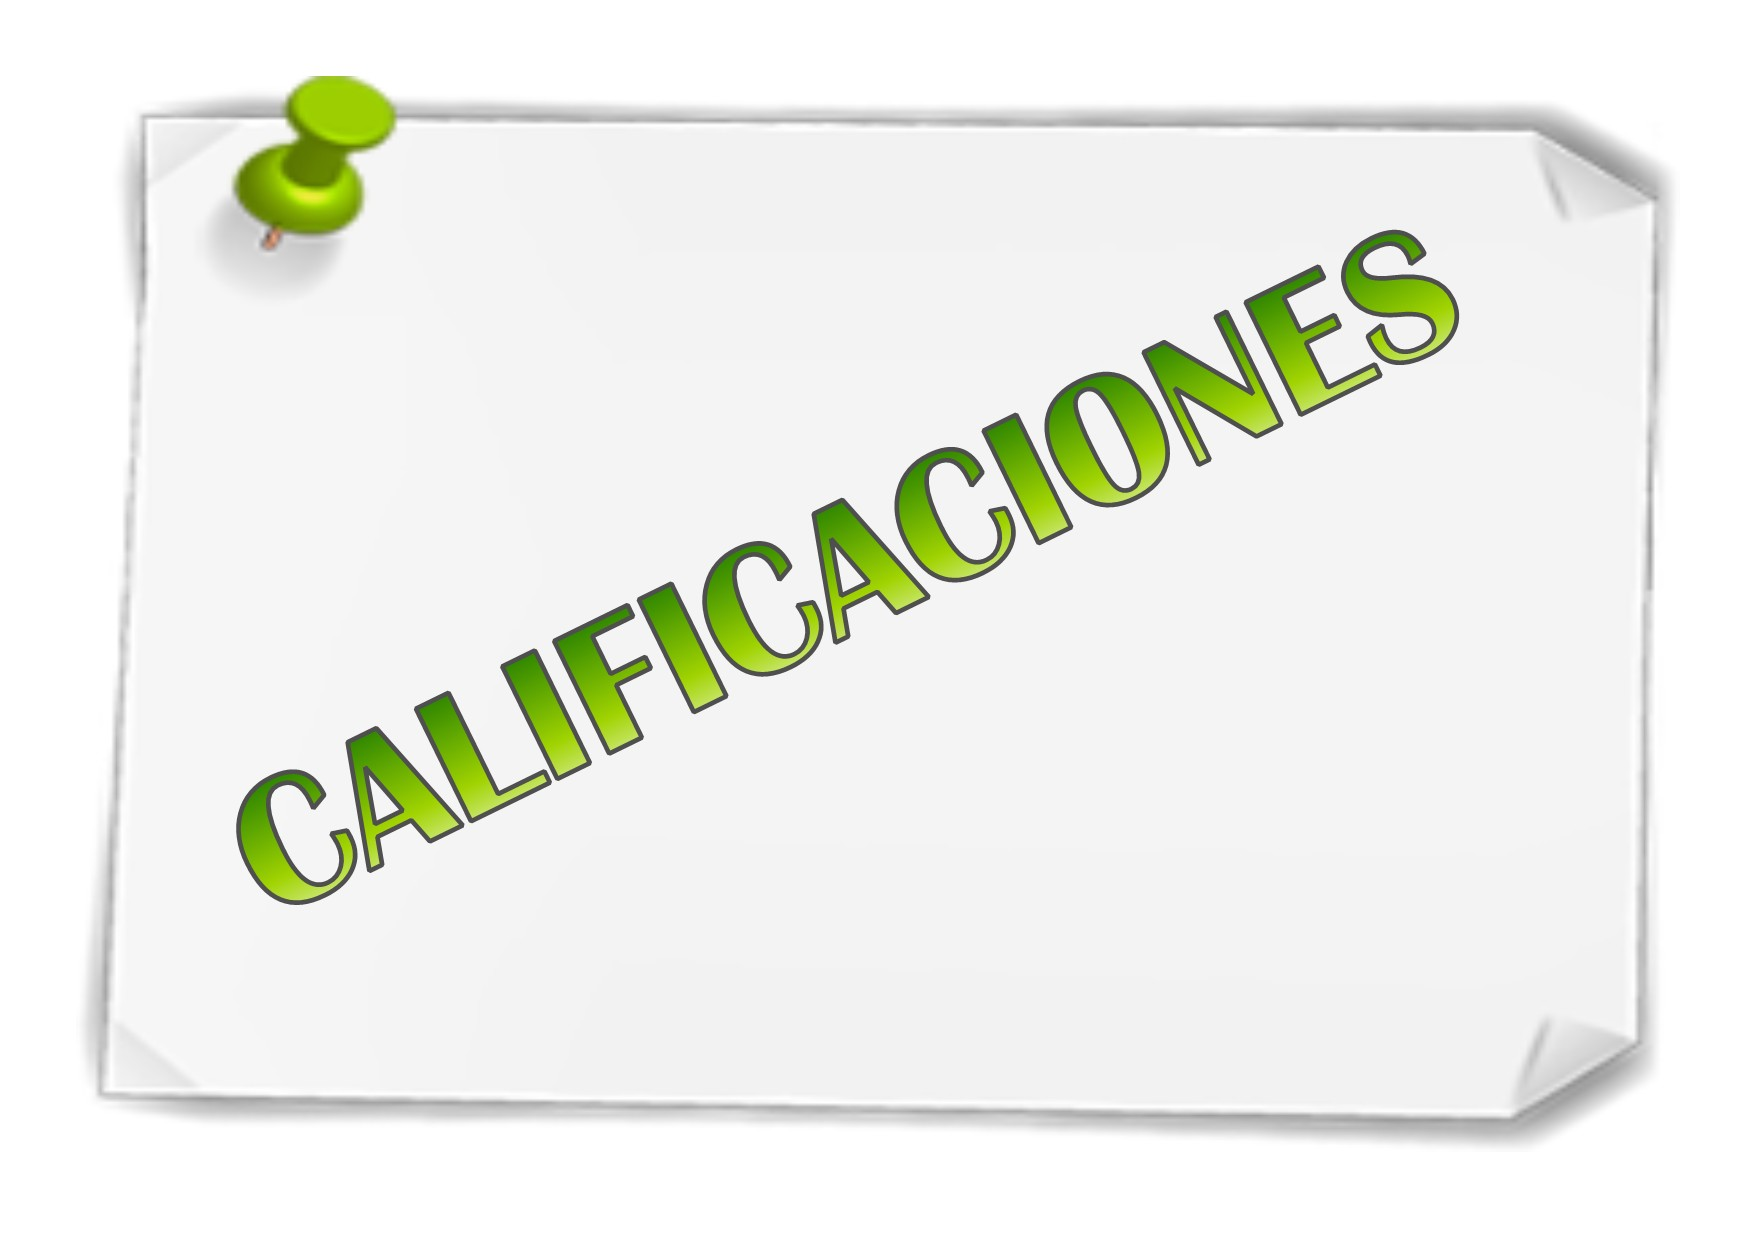 CALIFICACIONES 2015